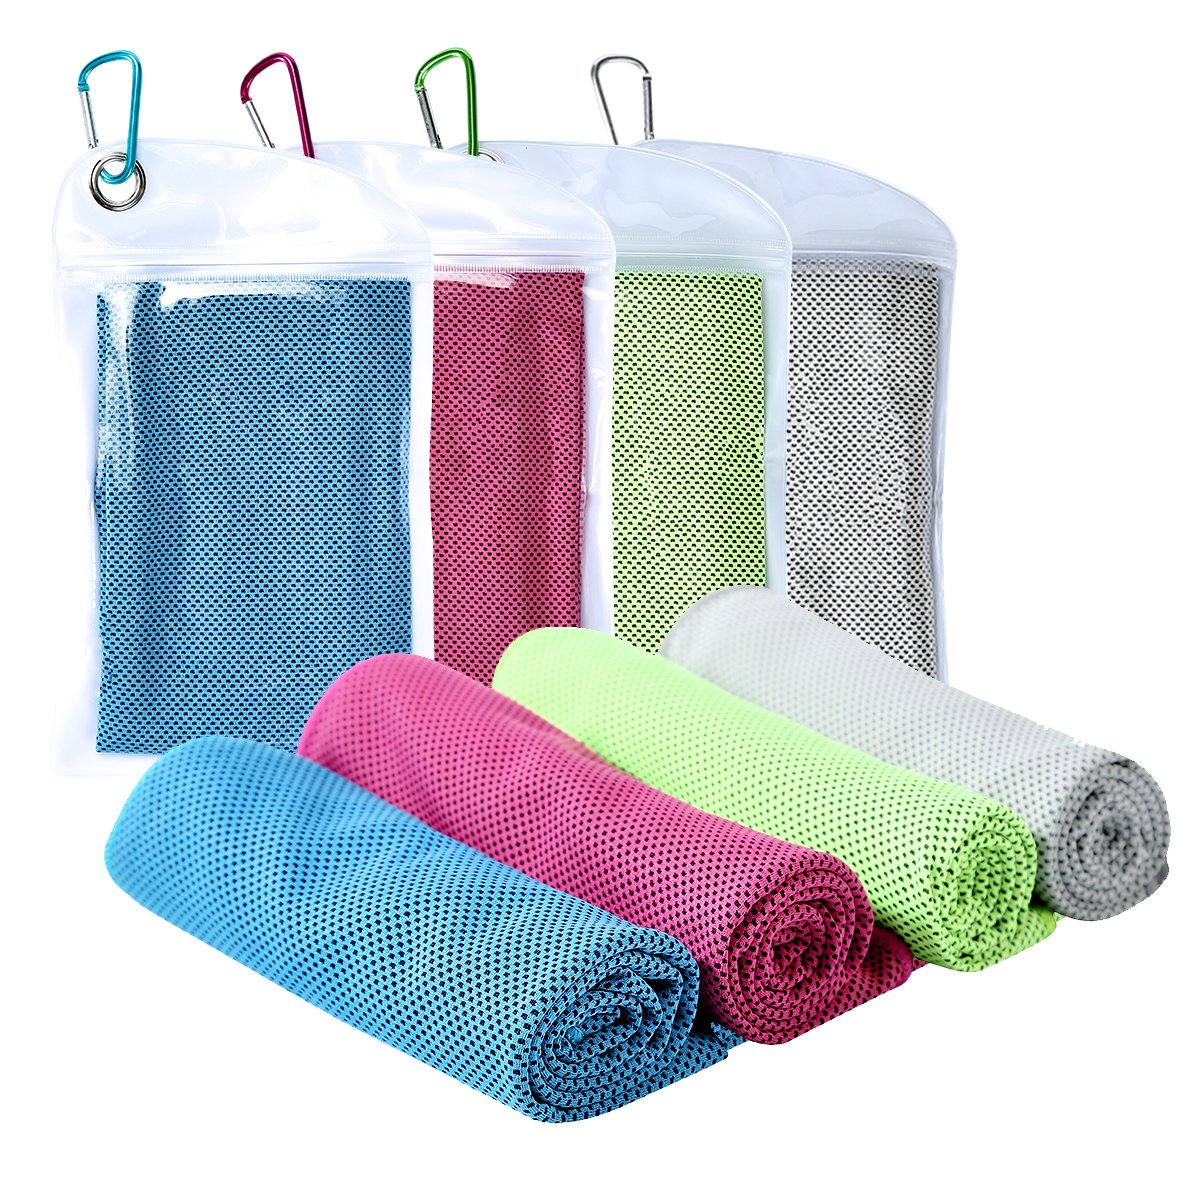 Cooling Towel [4 Pack] Sport Towels Microfiber Towel Fast Drying - Super Absorbent - Ultra Compact Cooling Towel for Sports, Workout, Fitness, Gym, Yoga, Pilates, Travel, Camping & More by GooKit